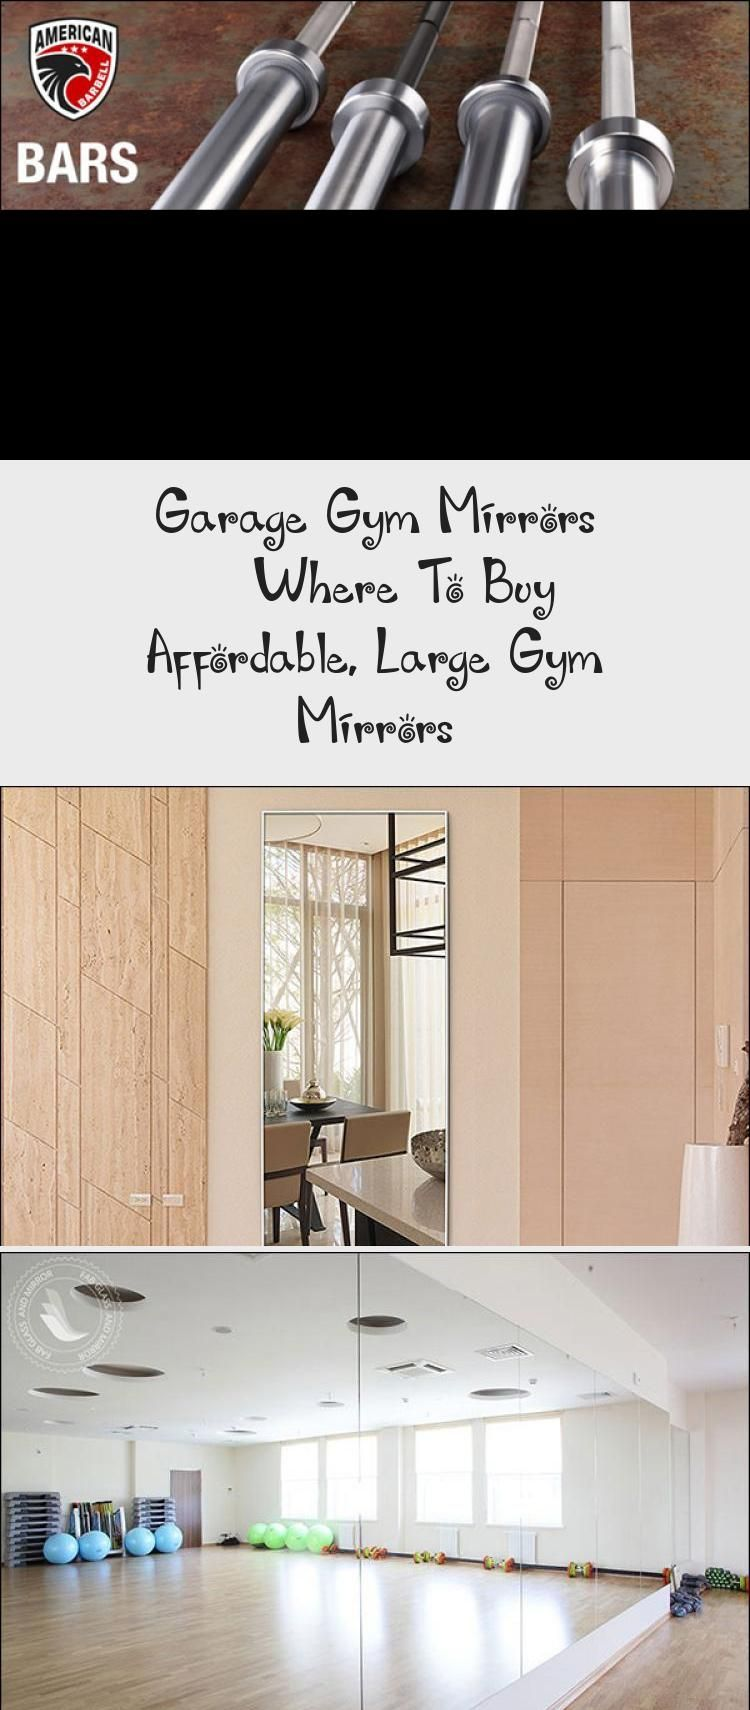 Fab Glass And Mirror Activity Mirrors For Gyms And Studios Homegymyoga Largehomegym Homegymdiy Dreamhomegym In 2020 Gym Mirrors Dream Home Gym Bedroom Renovation